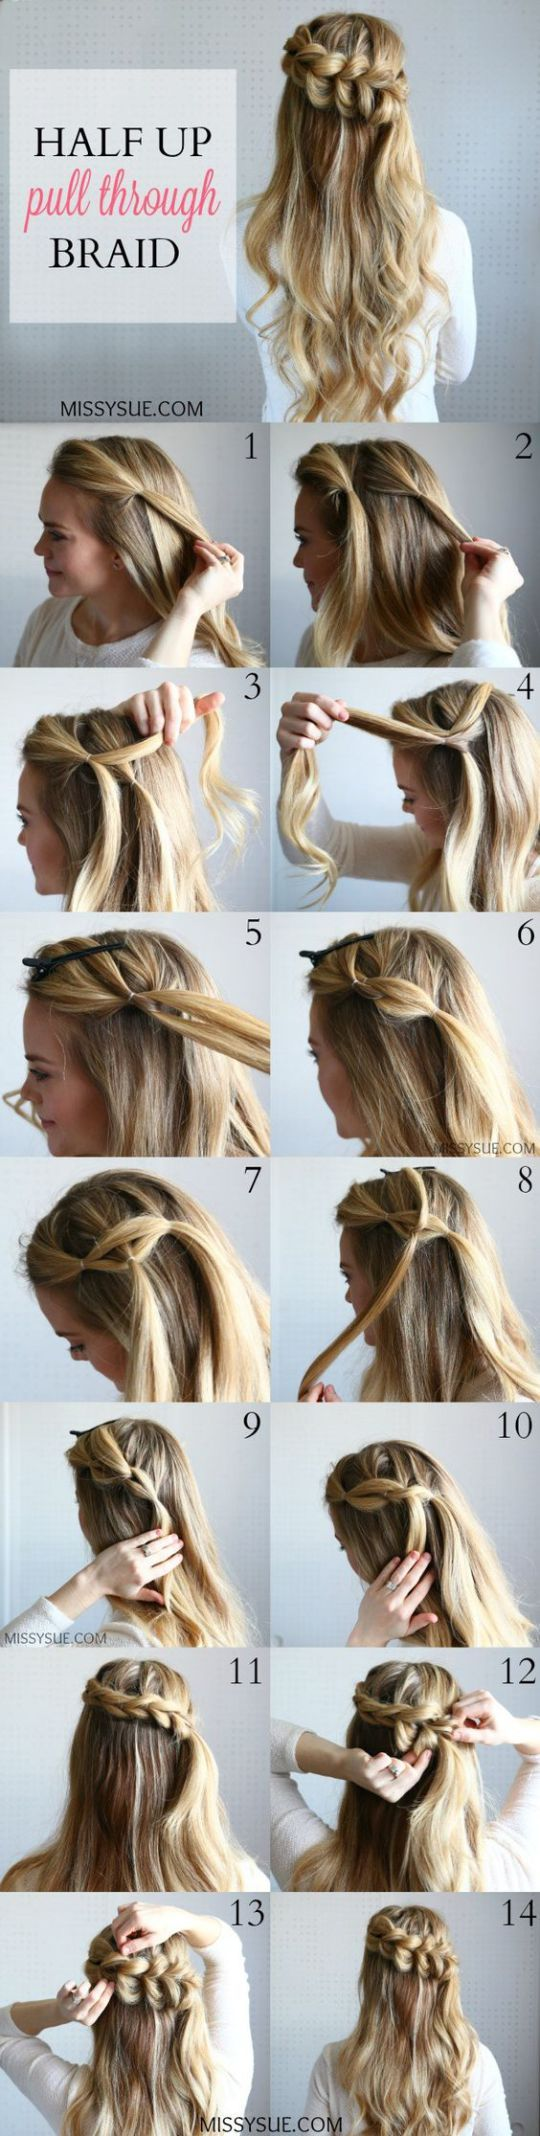 best hair and beauty images on pinterest hairstyle ideas hair